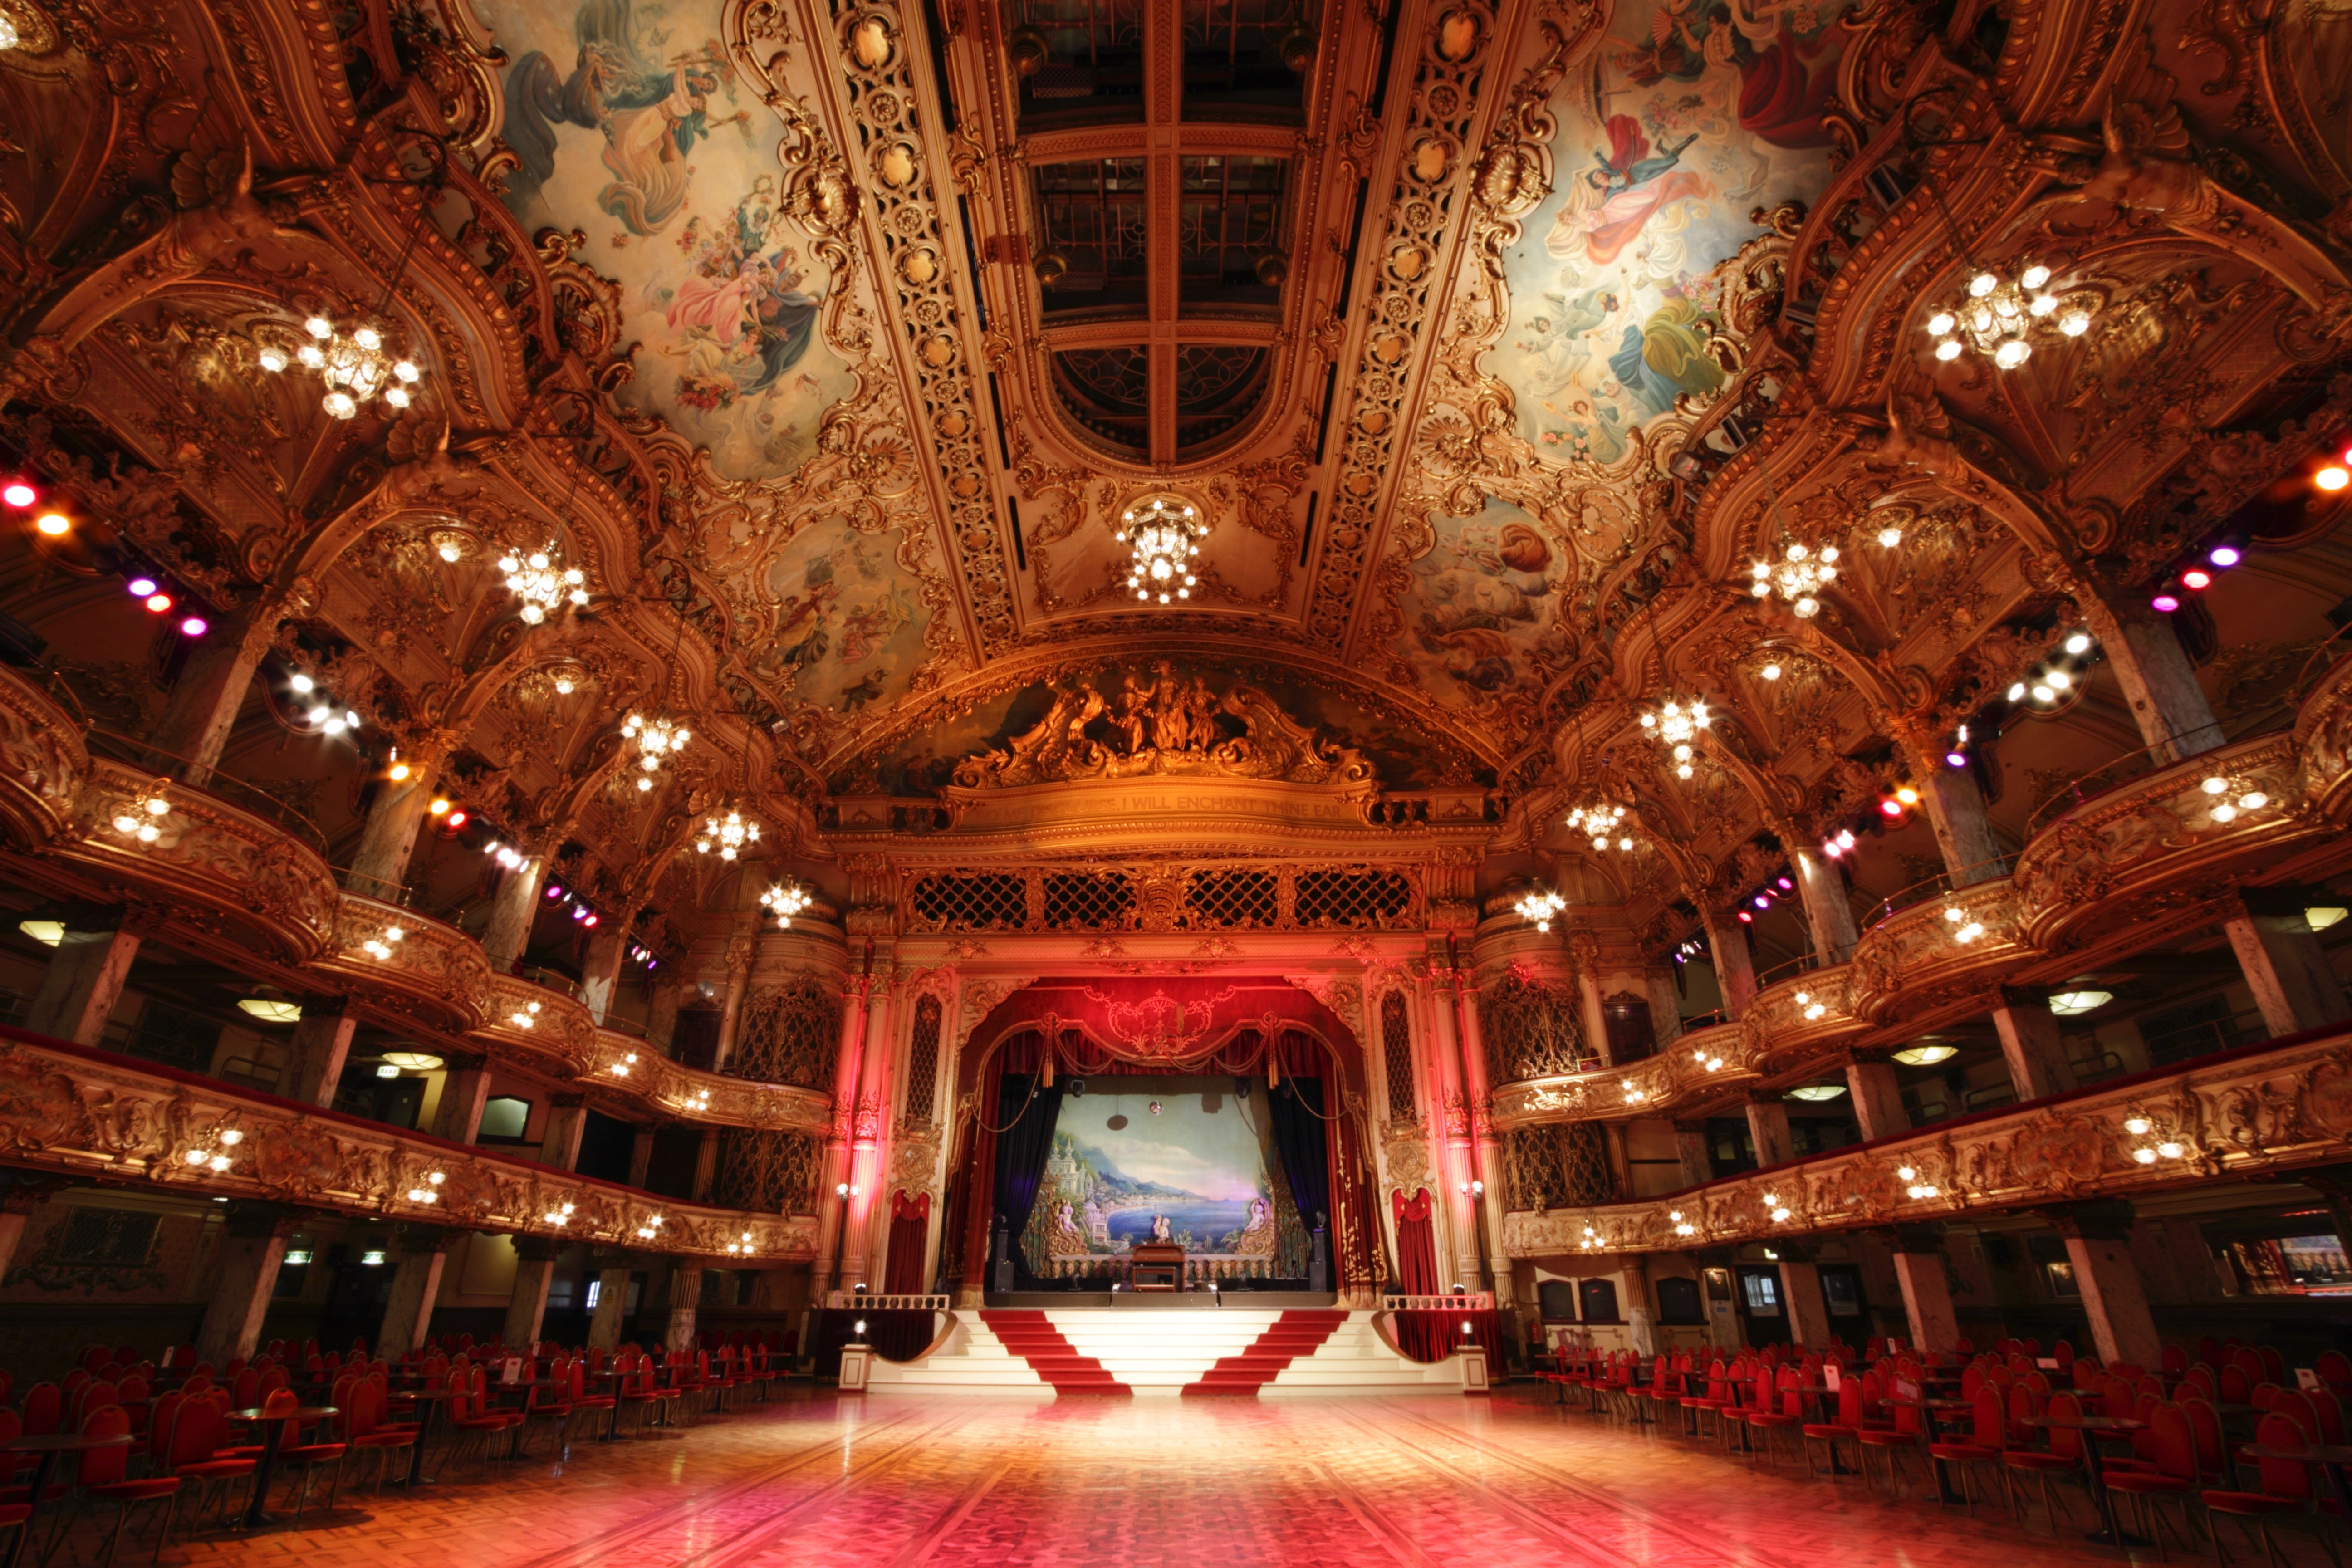 The ballroom of the Blackpool Tower